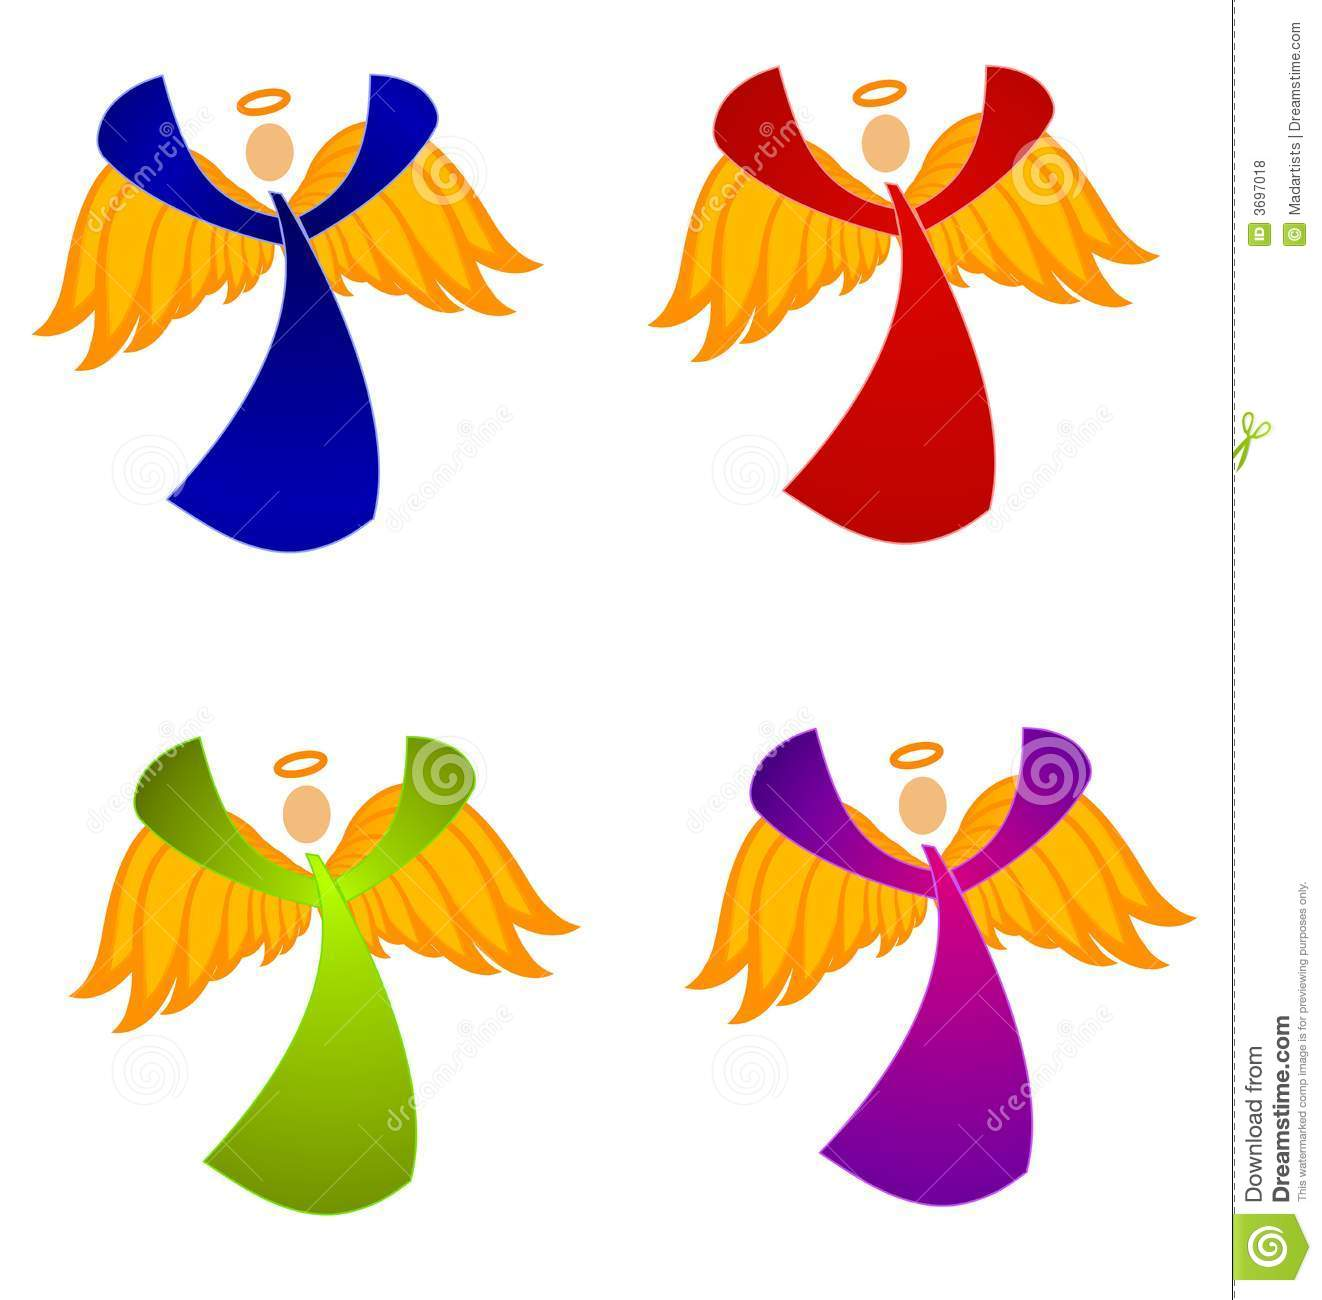 Variety Of Christmas Angels Clip Art Royalty Free Stock Photos   Image